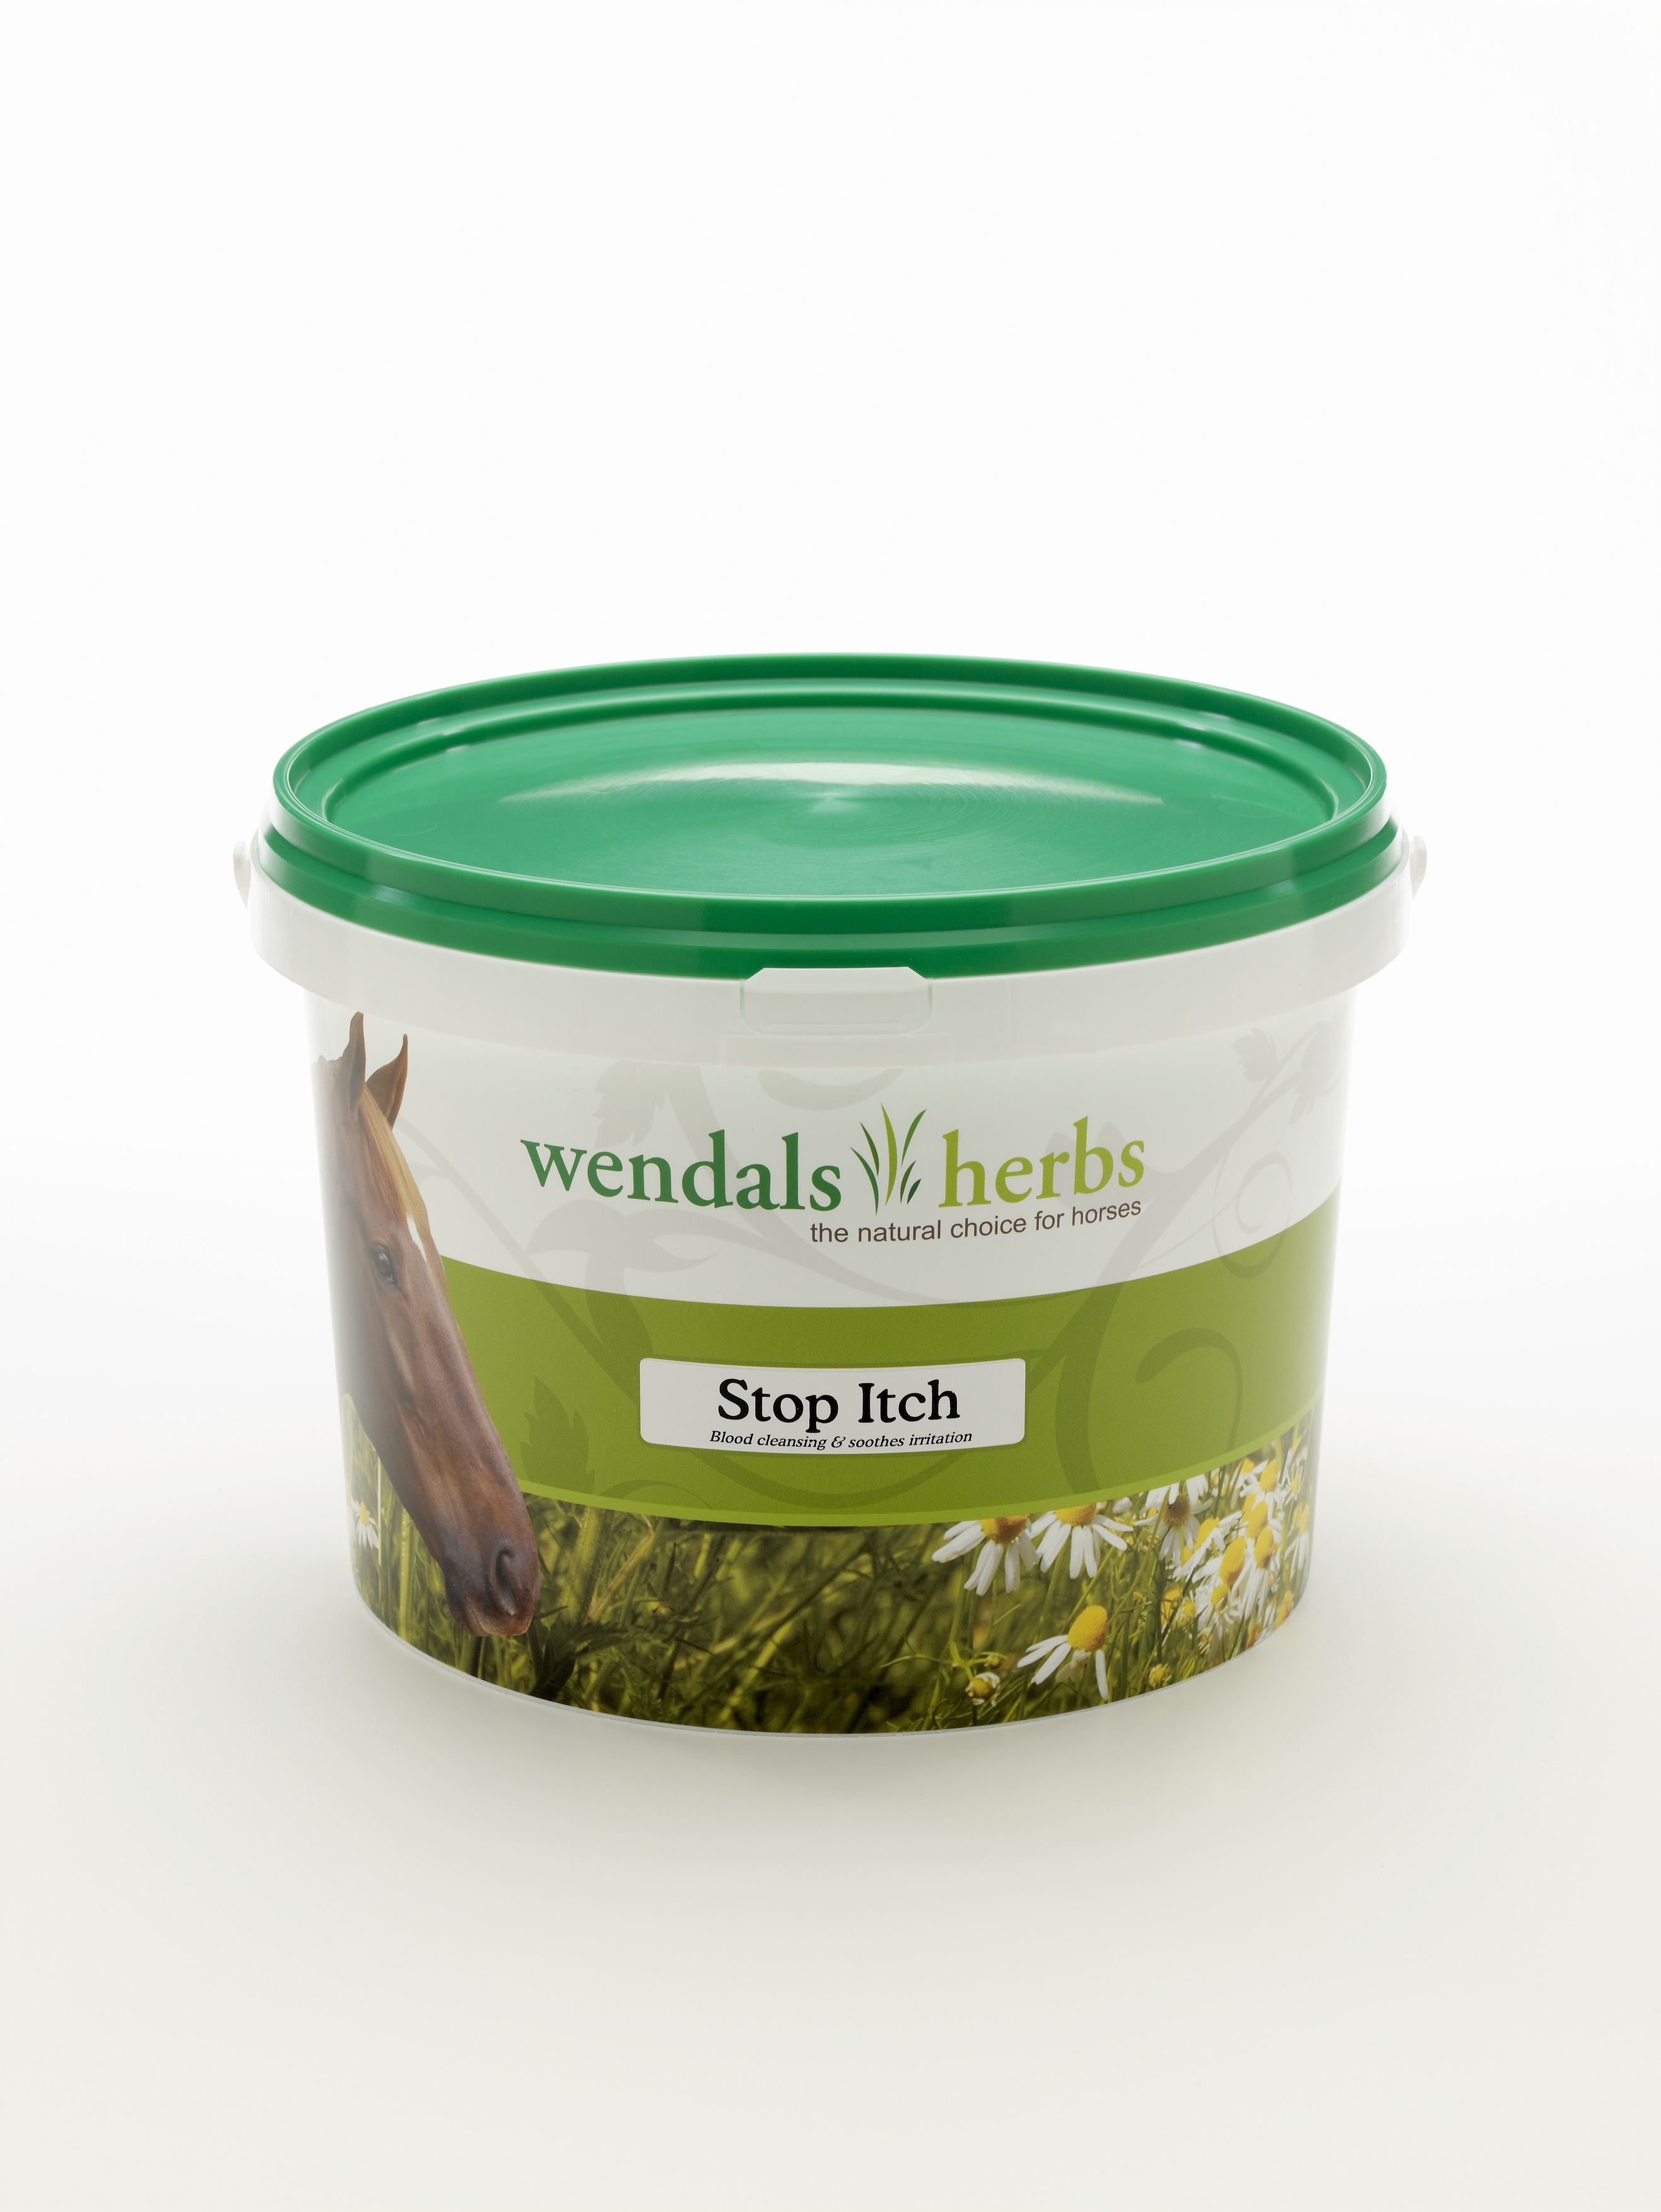 Wendals Stop Itch for Horses